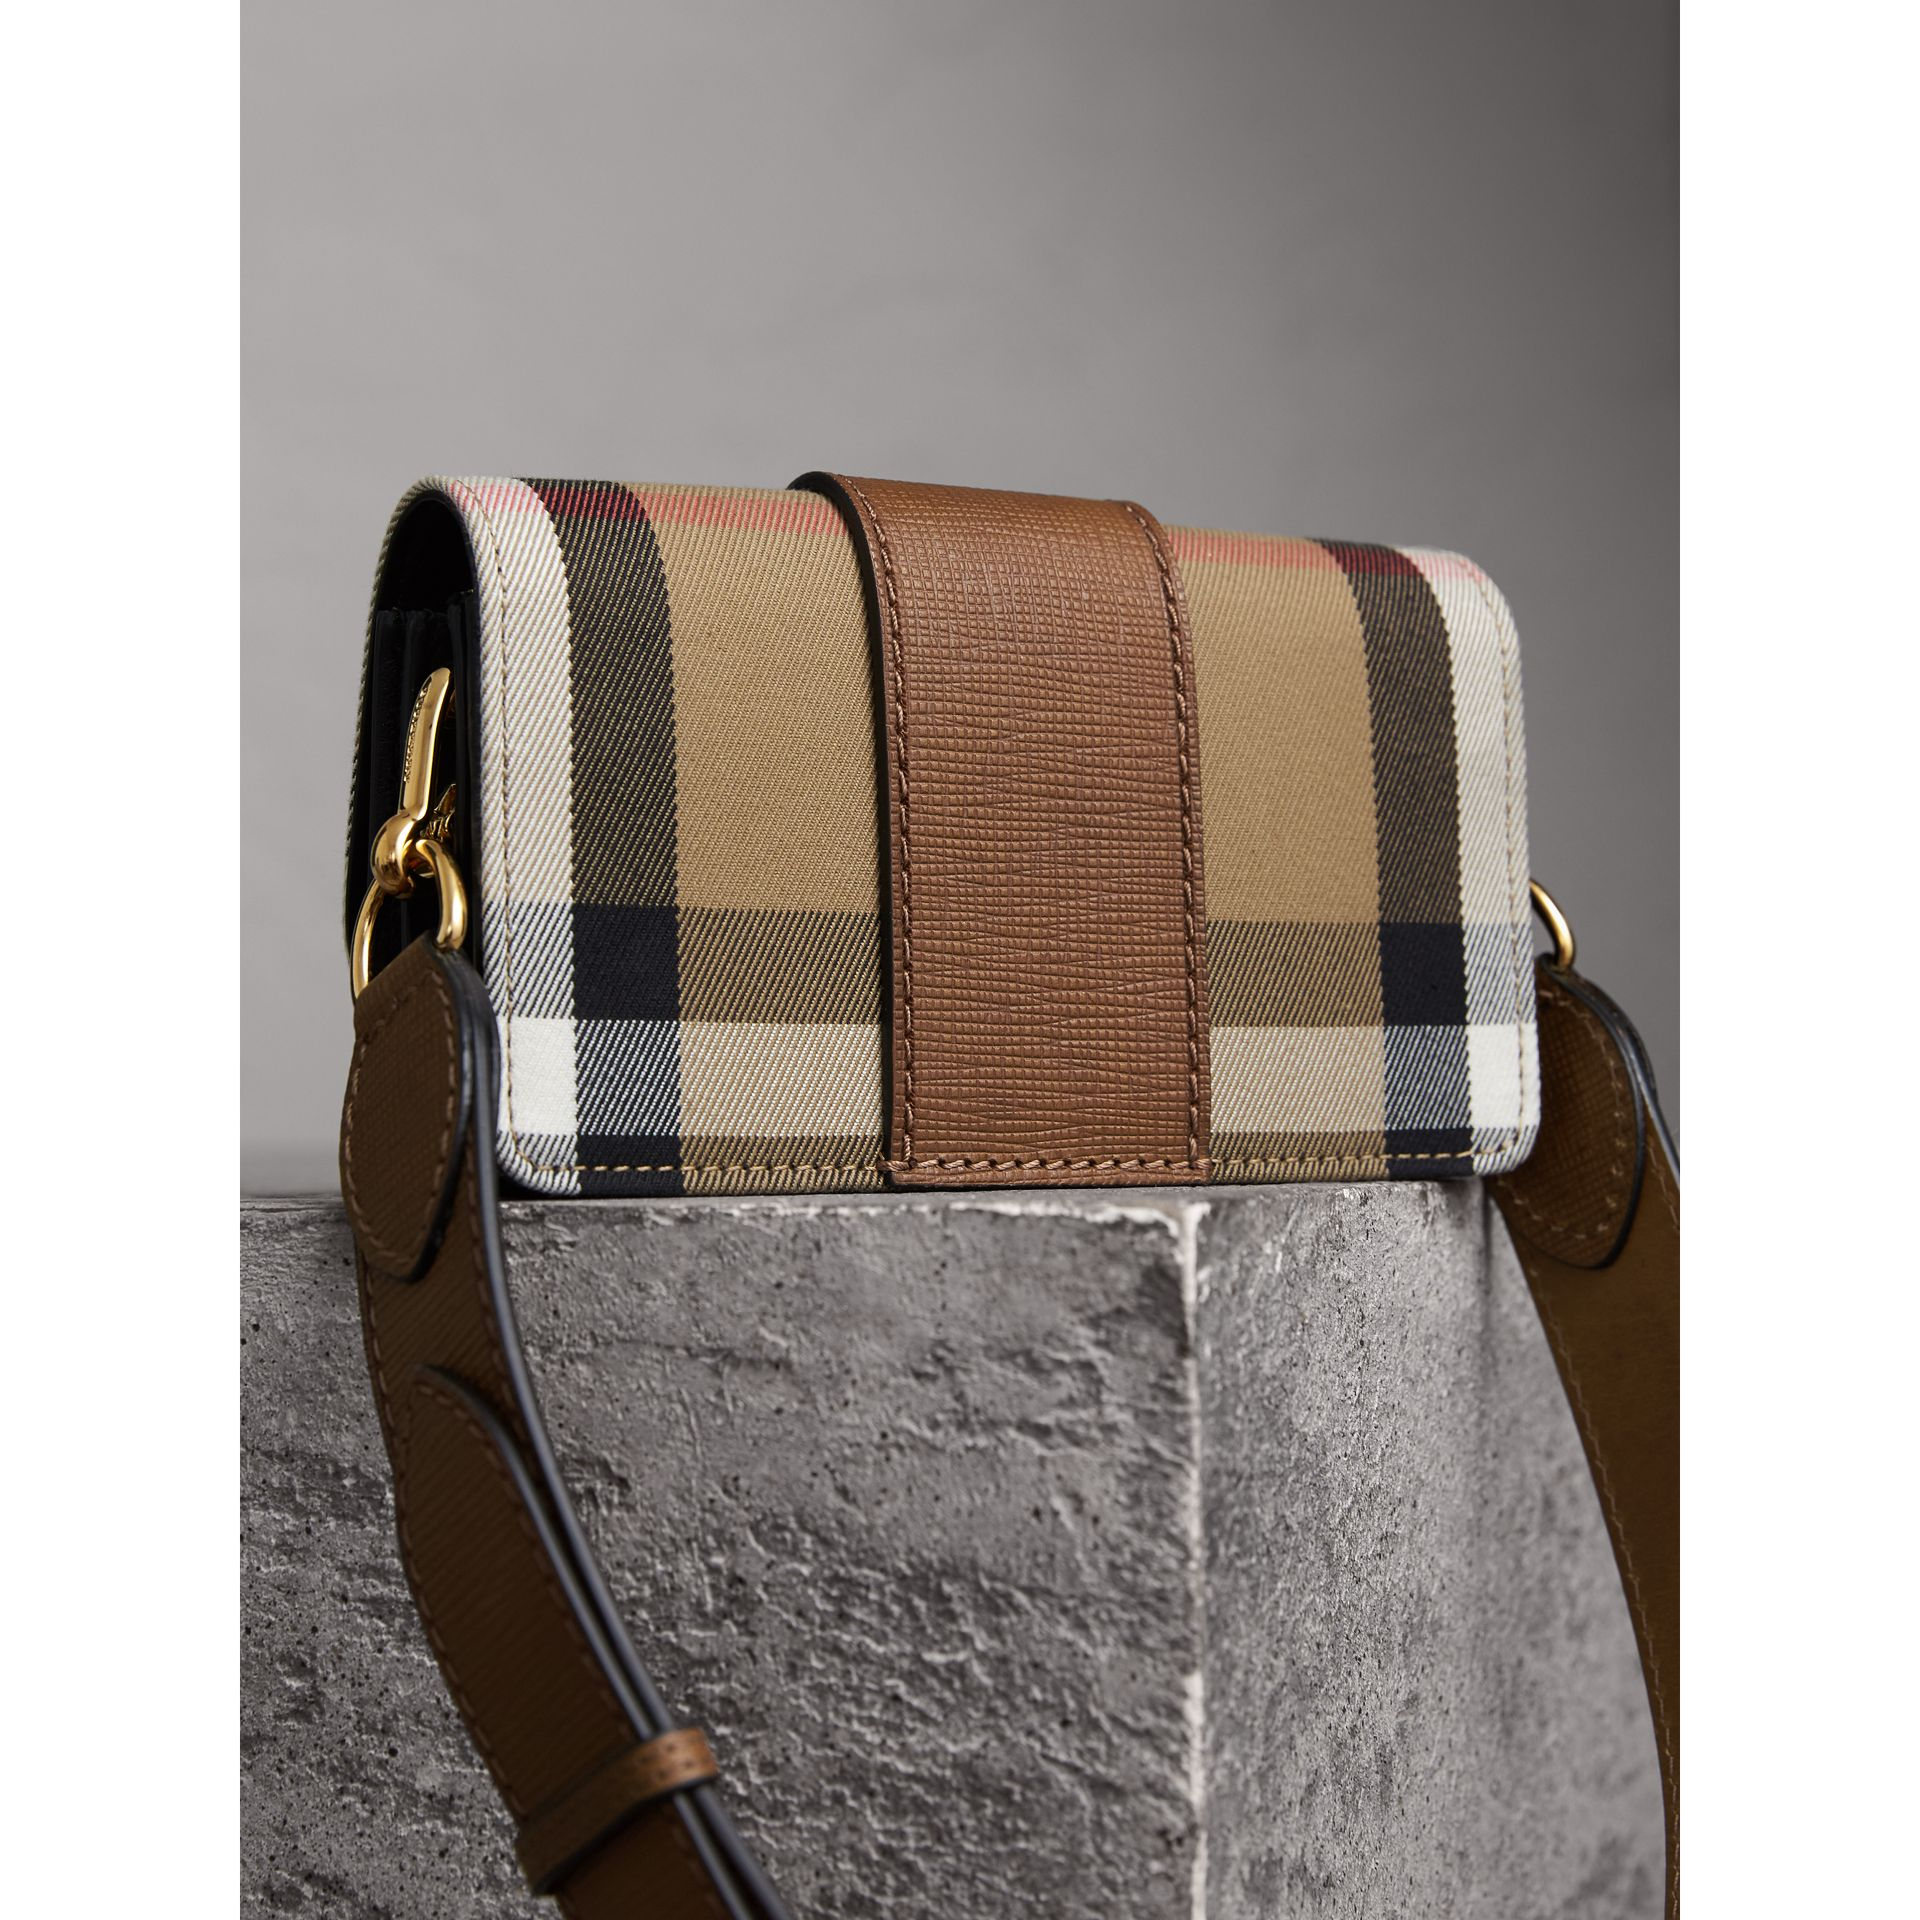 Petit sac The Buckle en coton House check et cuir (Hâle) - Femme | Burberry - photo de la galerie 5